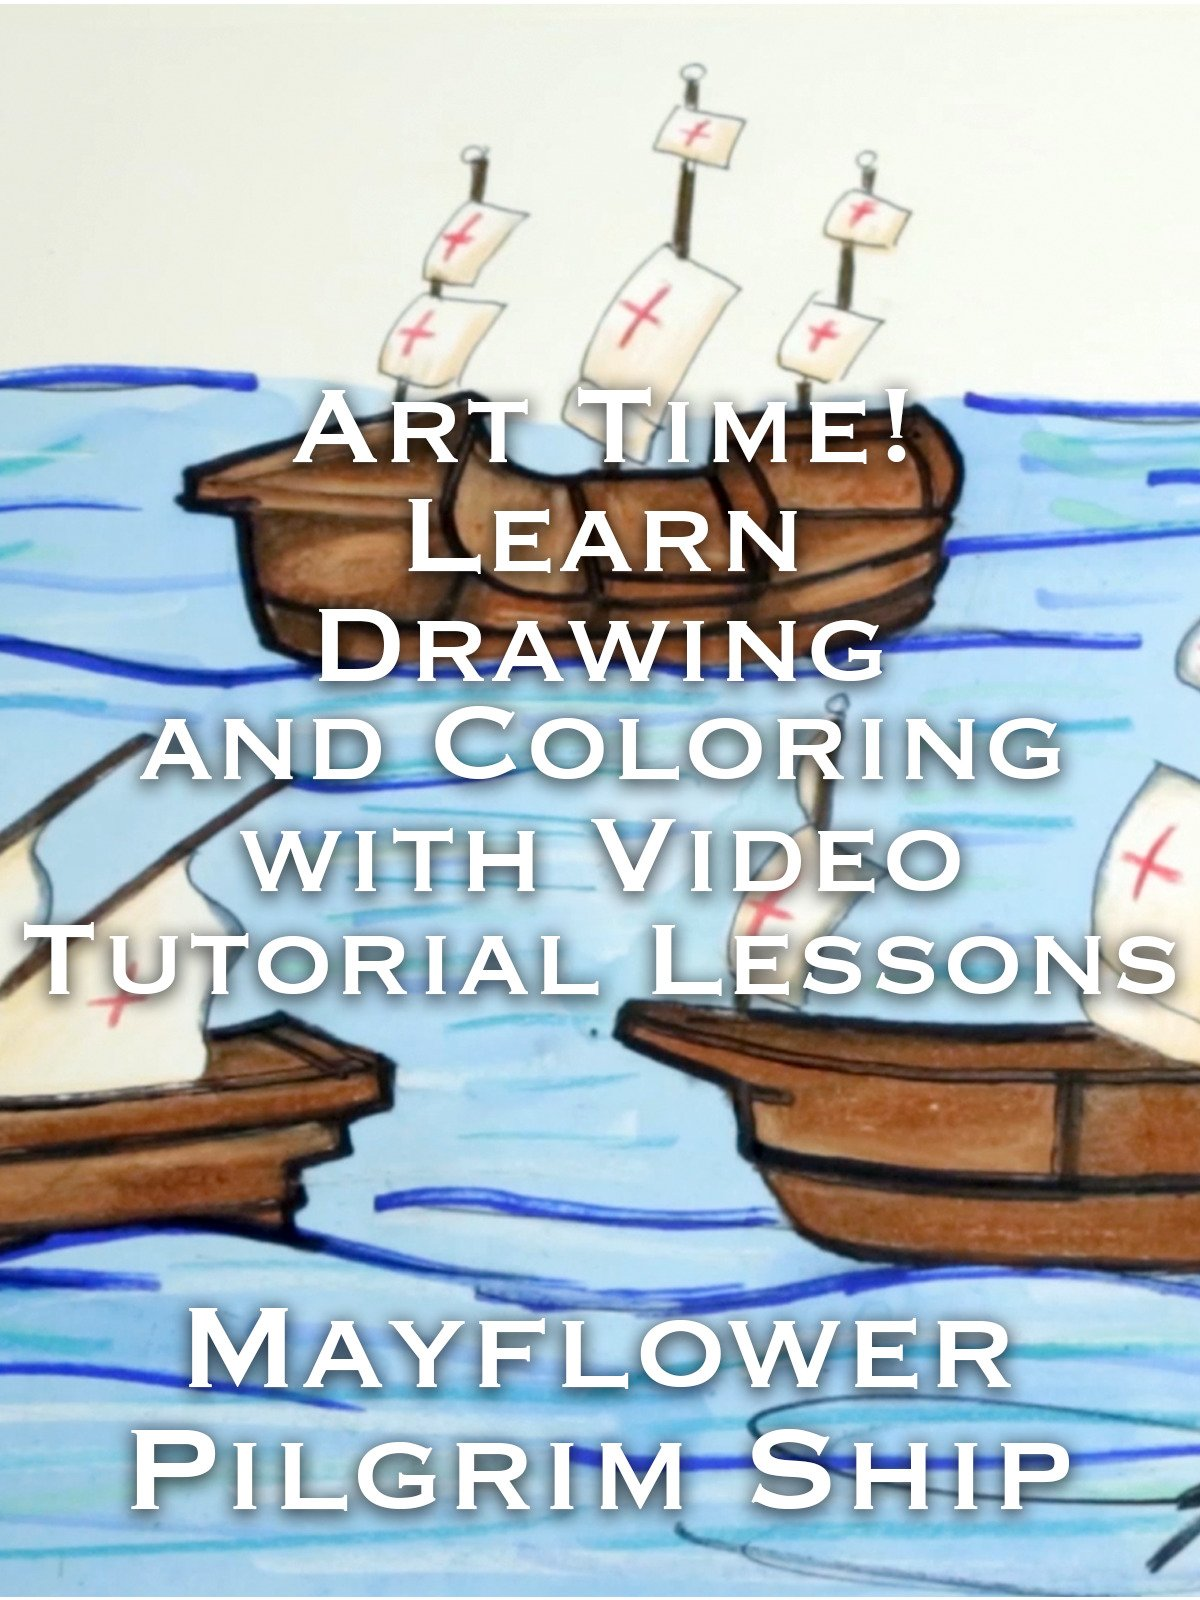 Art Time! Learn Drawing and Coloring with Video Tutorial Lessons Mayflower Pilgrim Ship